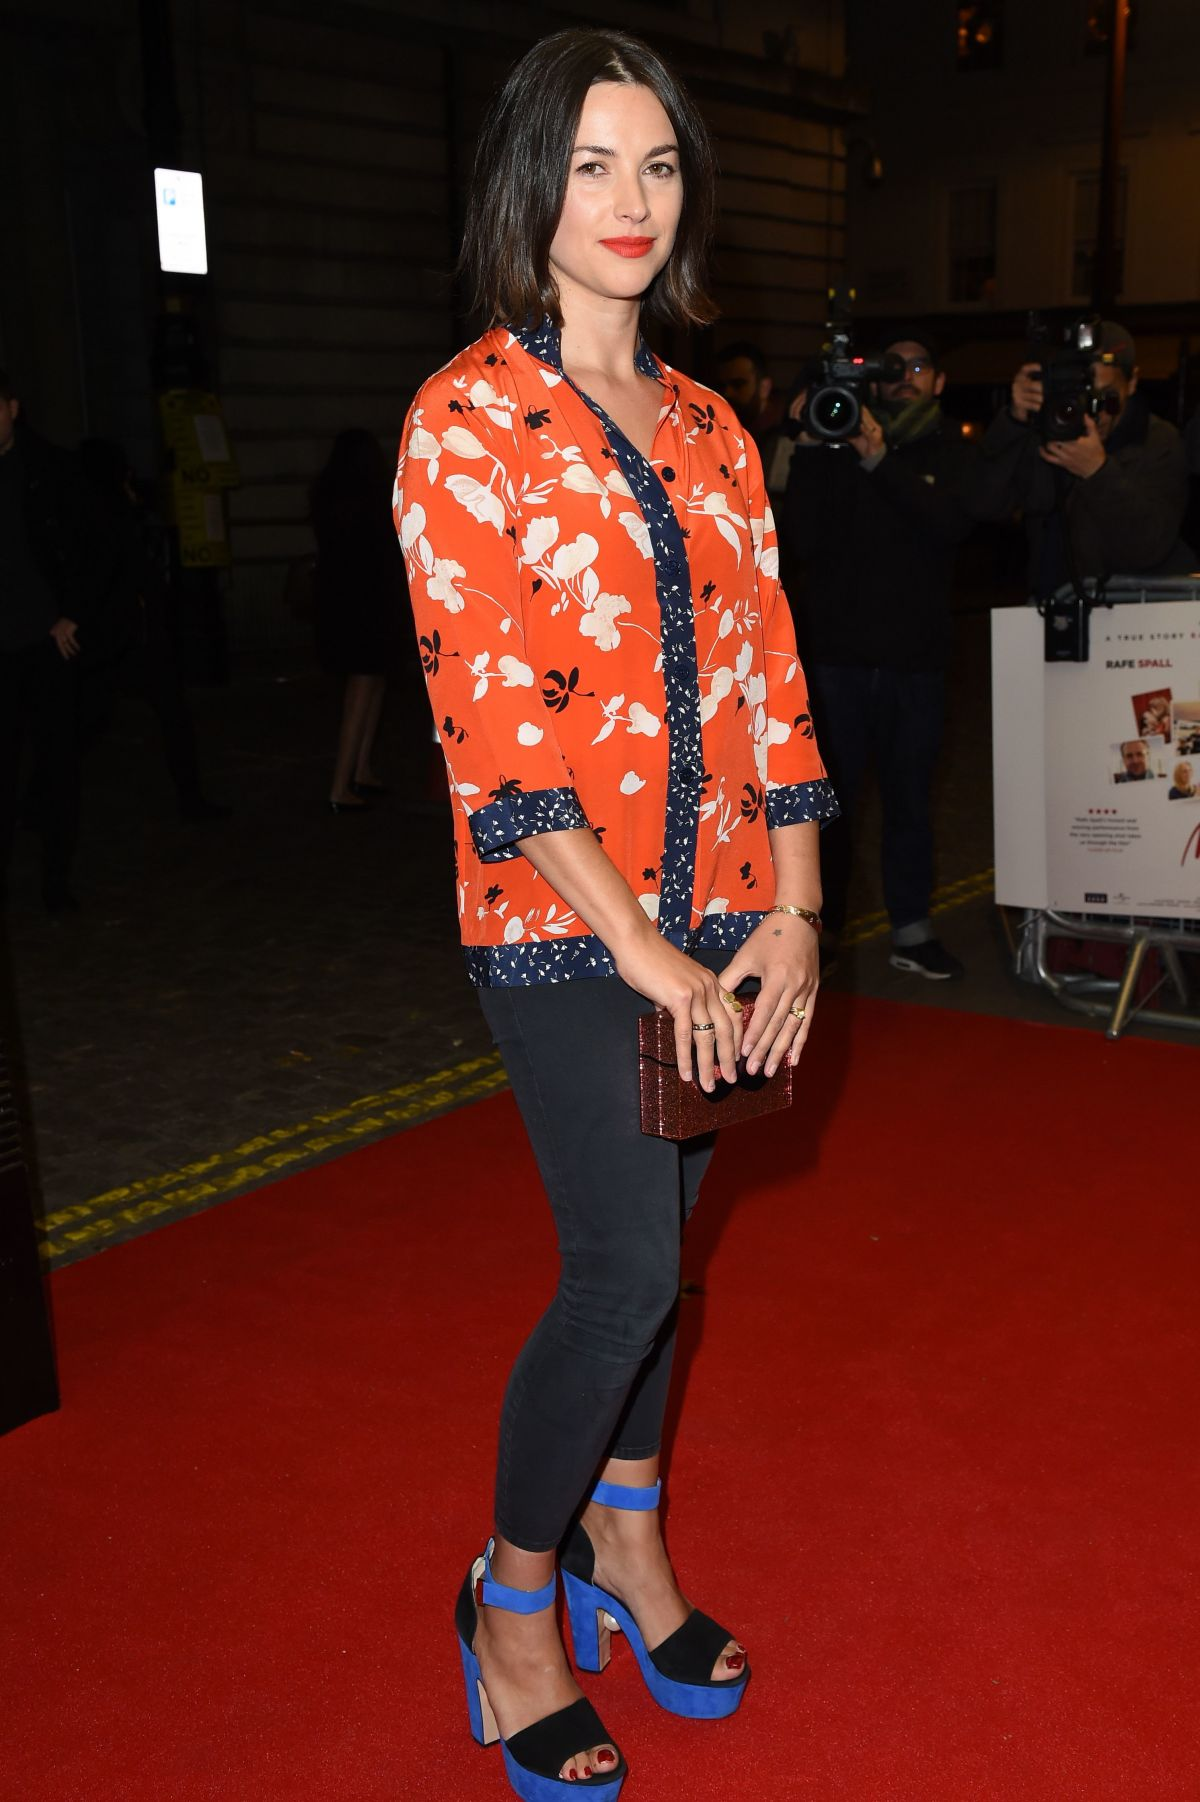 AMELIA WARNER at Mum's List Premiere in London 11/23/2016